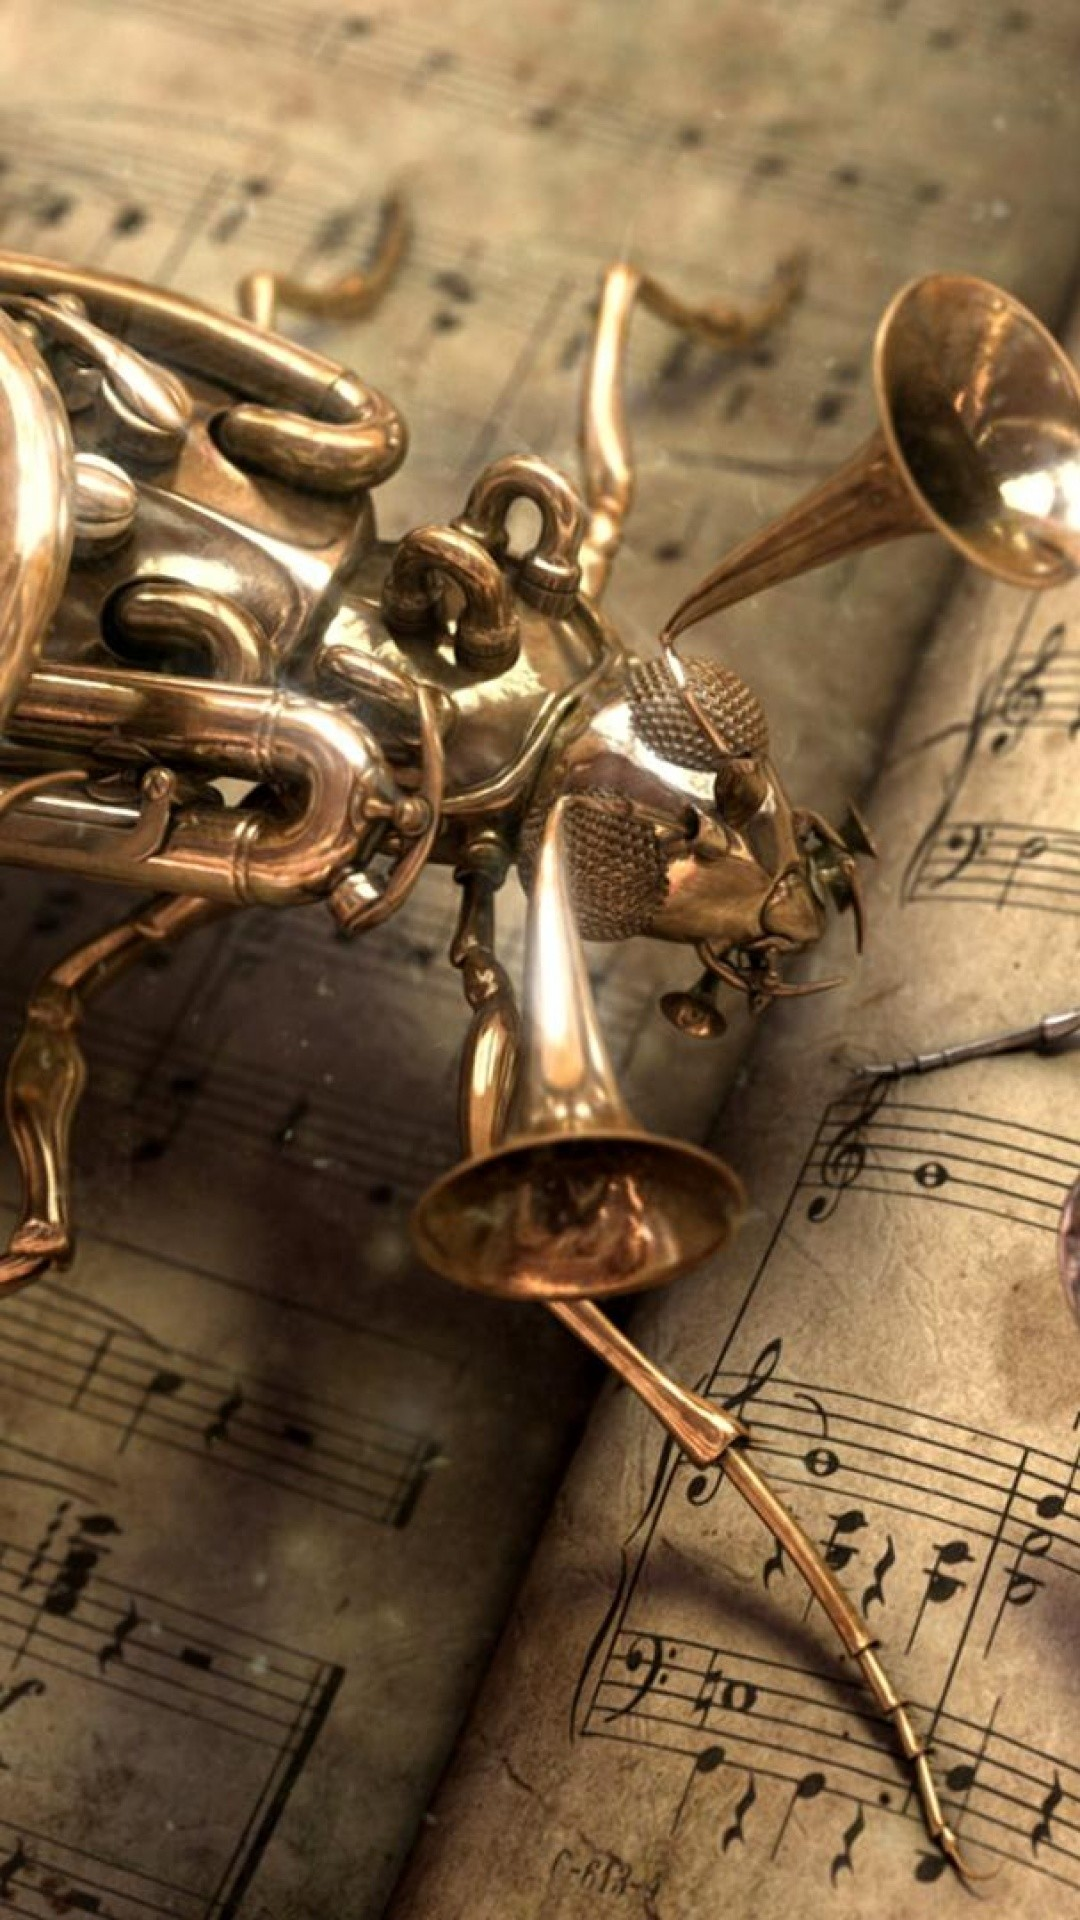 Musical Bug Steampunk iPhone 6 Plus HD Wallpaper